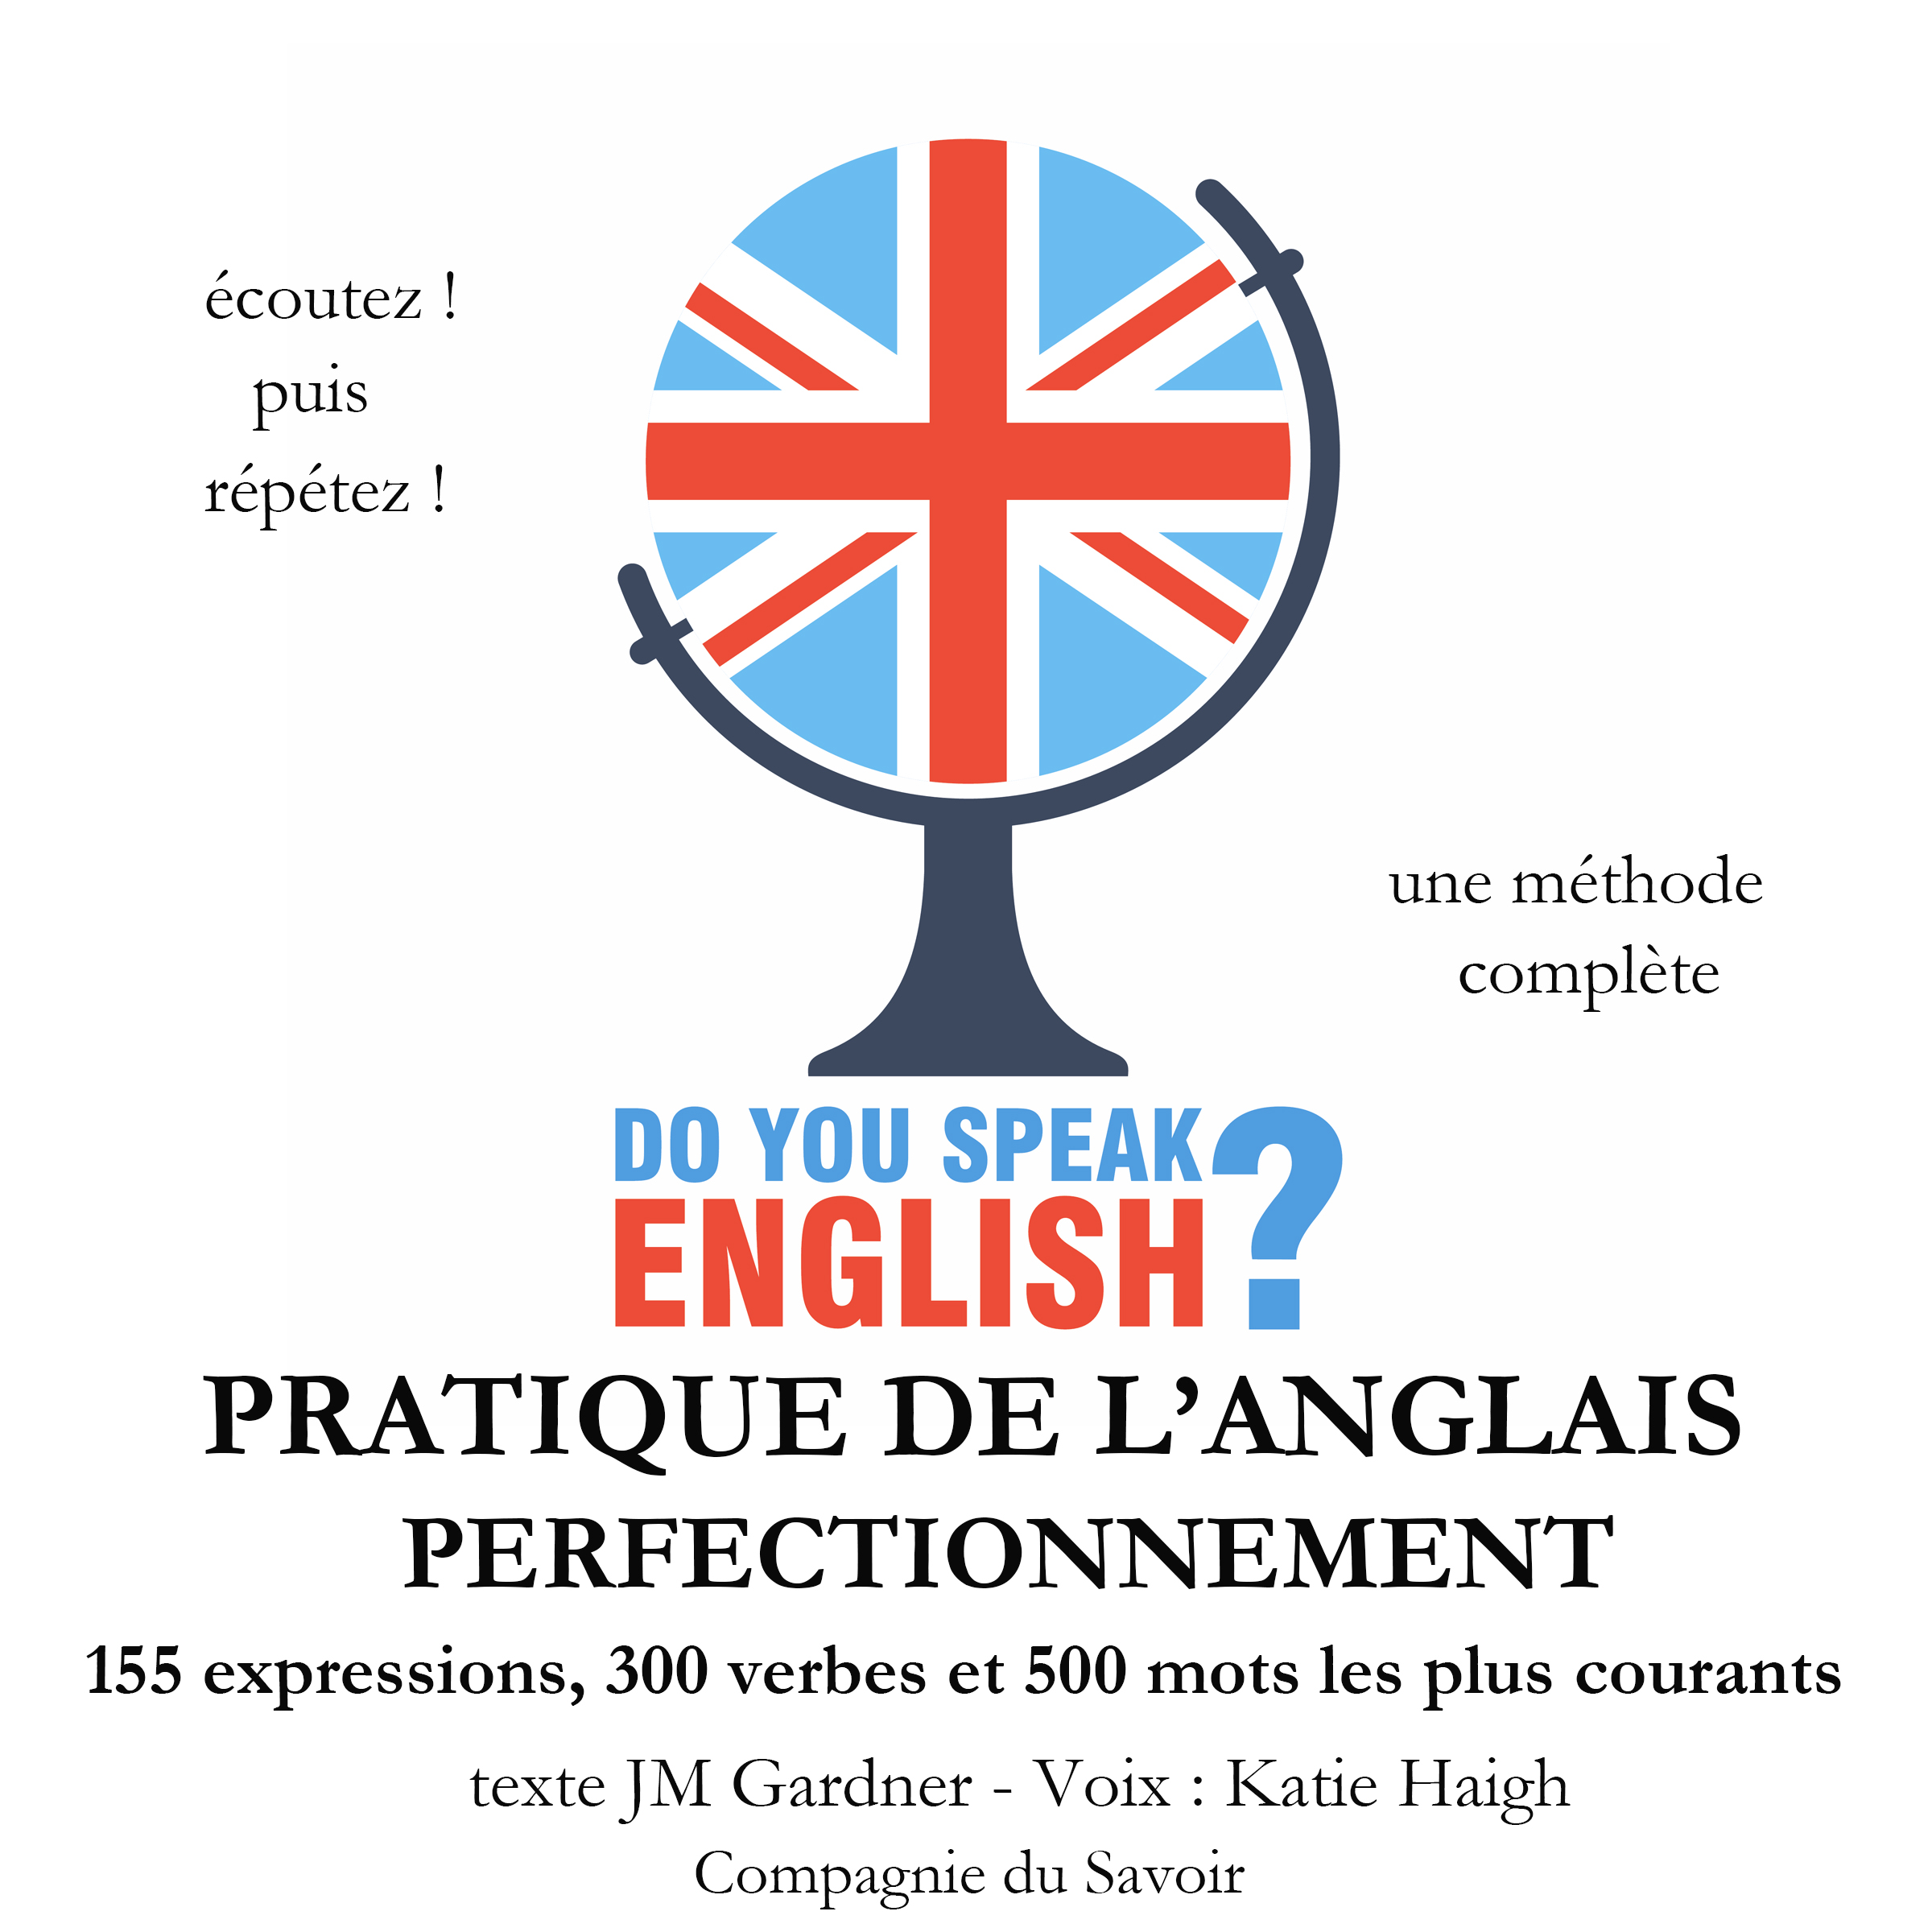 Do You Speak English Pratique De L Anglais Perfectionnement 200 Expressions 100 Verbes Et 500 Mots Les Plus Courants 5 Heures De Pratique Compagnie Du Savoir